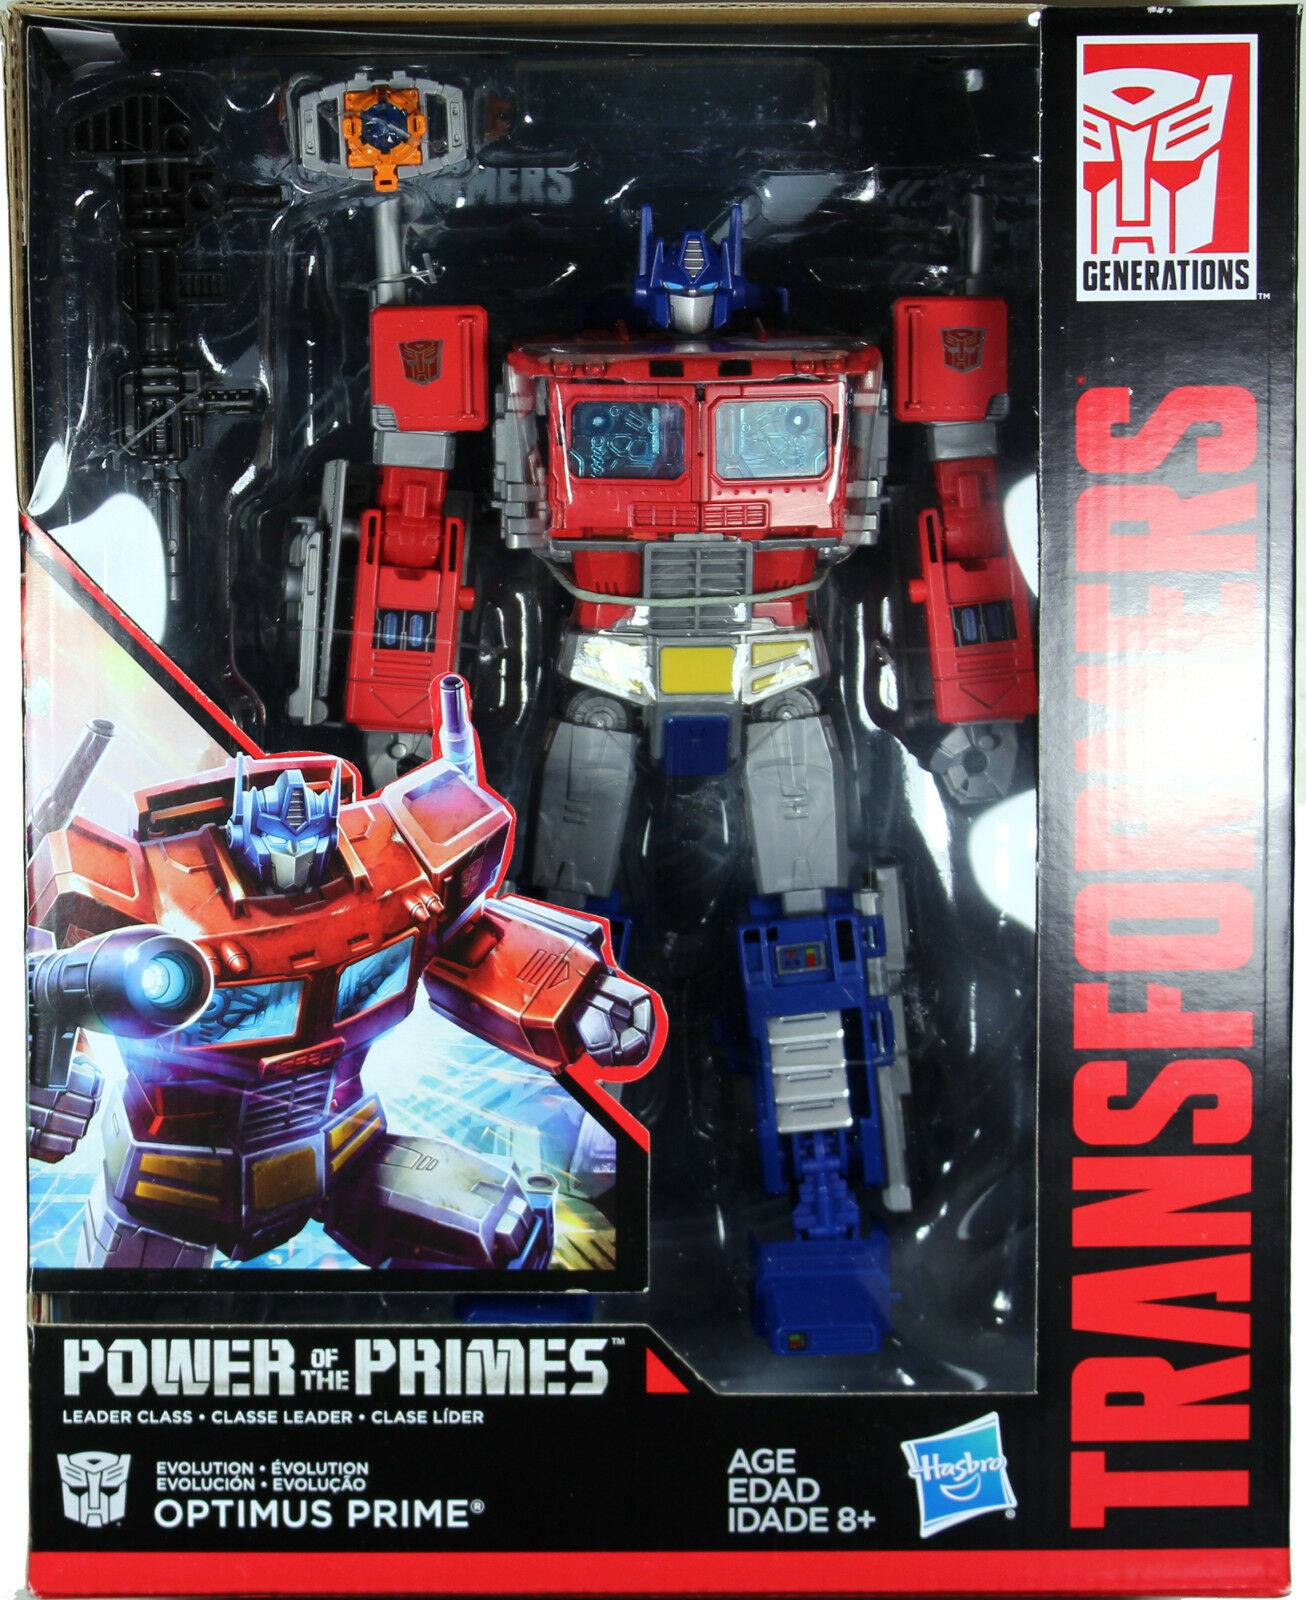 Transformers  POWER OF THE PRIMES LEADER CLASS OPTIMUS PRIME ACTON FIGURE